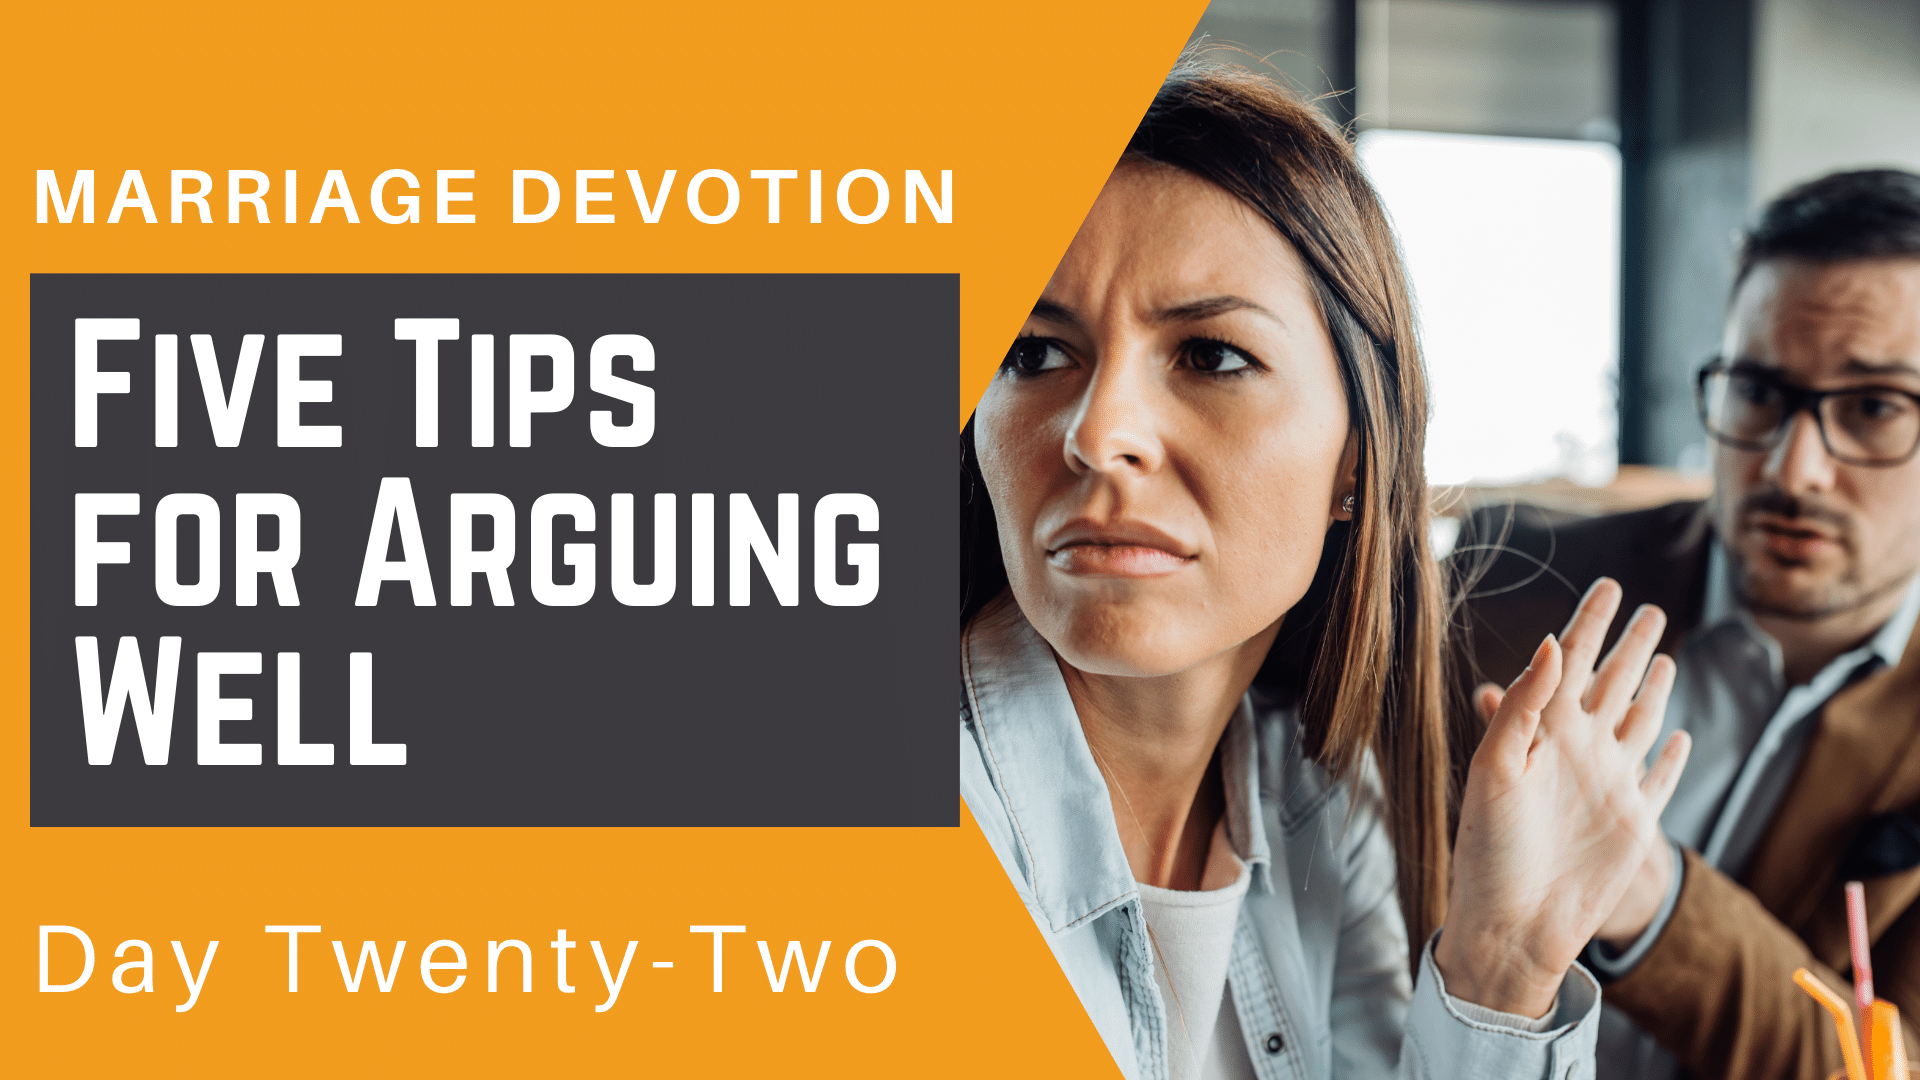 Marriage Devotion Day 22 – Five Tips for Arguing Well